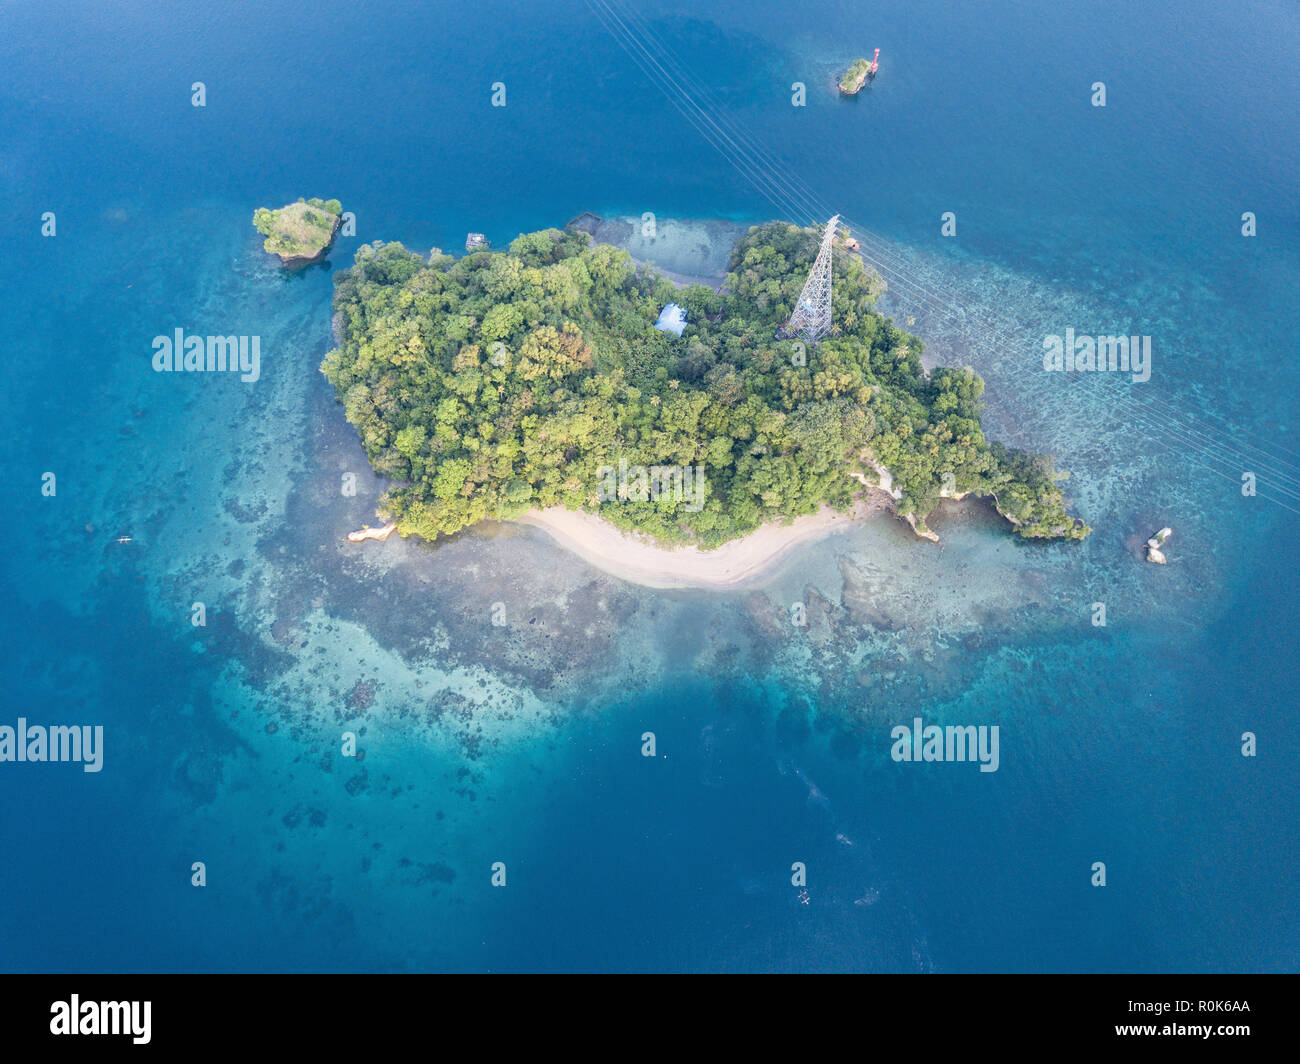 An aerial view of Lembeh Strait at the northern tip of Sulawesi in Indonesia. - Stock Image